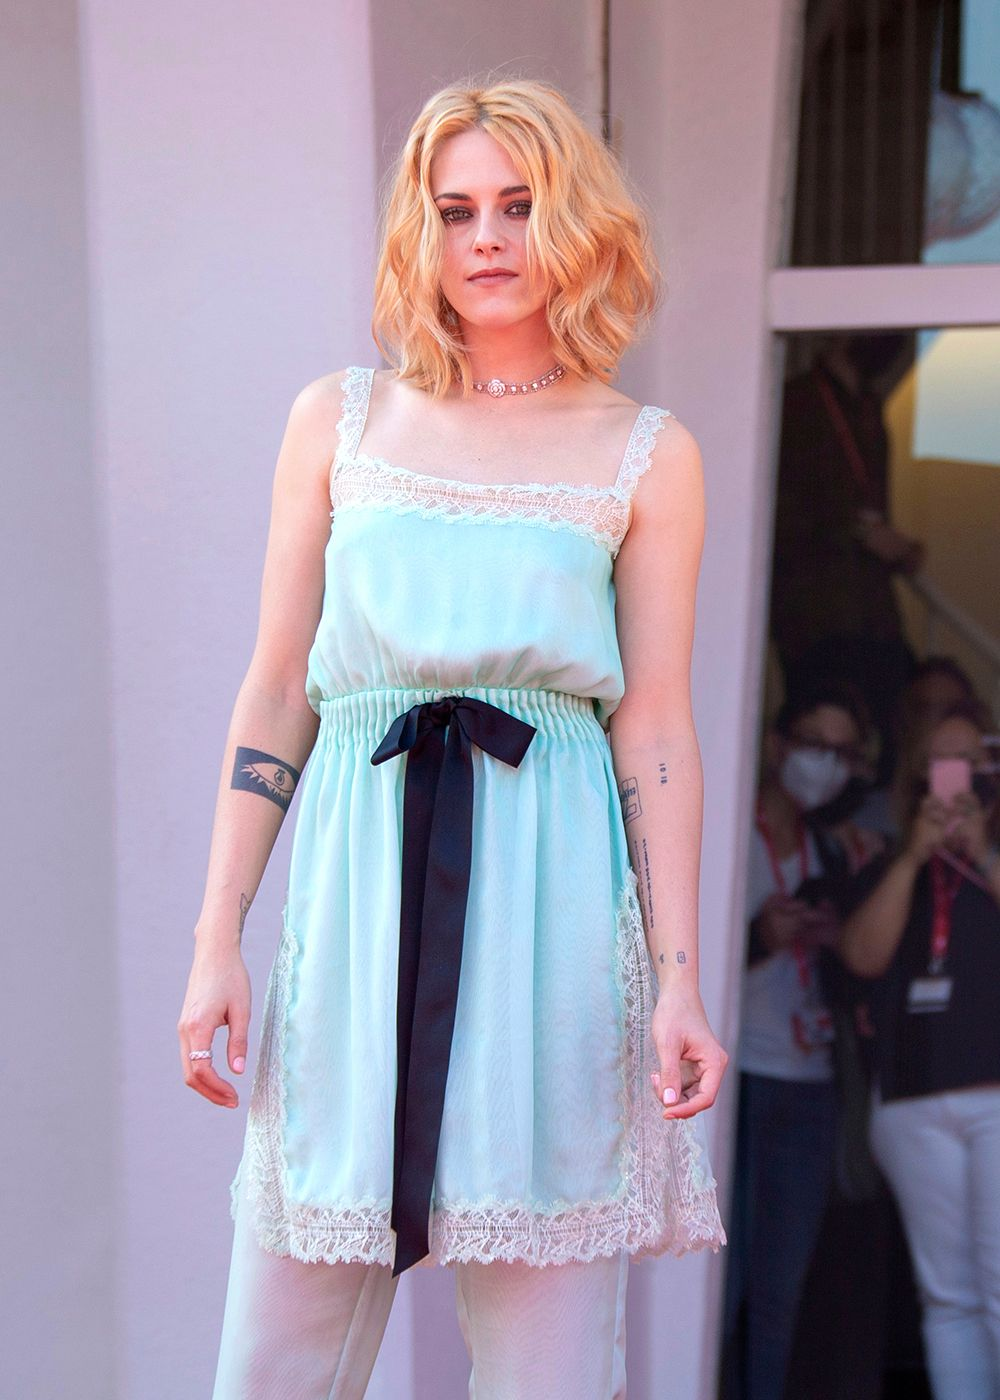 Kristen Stewart poses for photographers upon arrival at the premiere of the film 'Spenser' during the 78th edition of the Venice Film Festival in Venice, Italy, Friday, Sep, 3, 2021. (Photo by Joel C Ryan/Invision/AP)